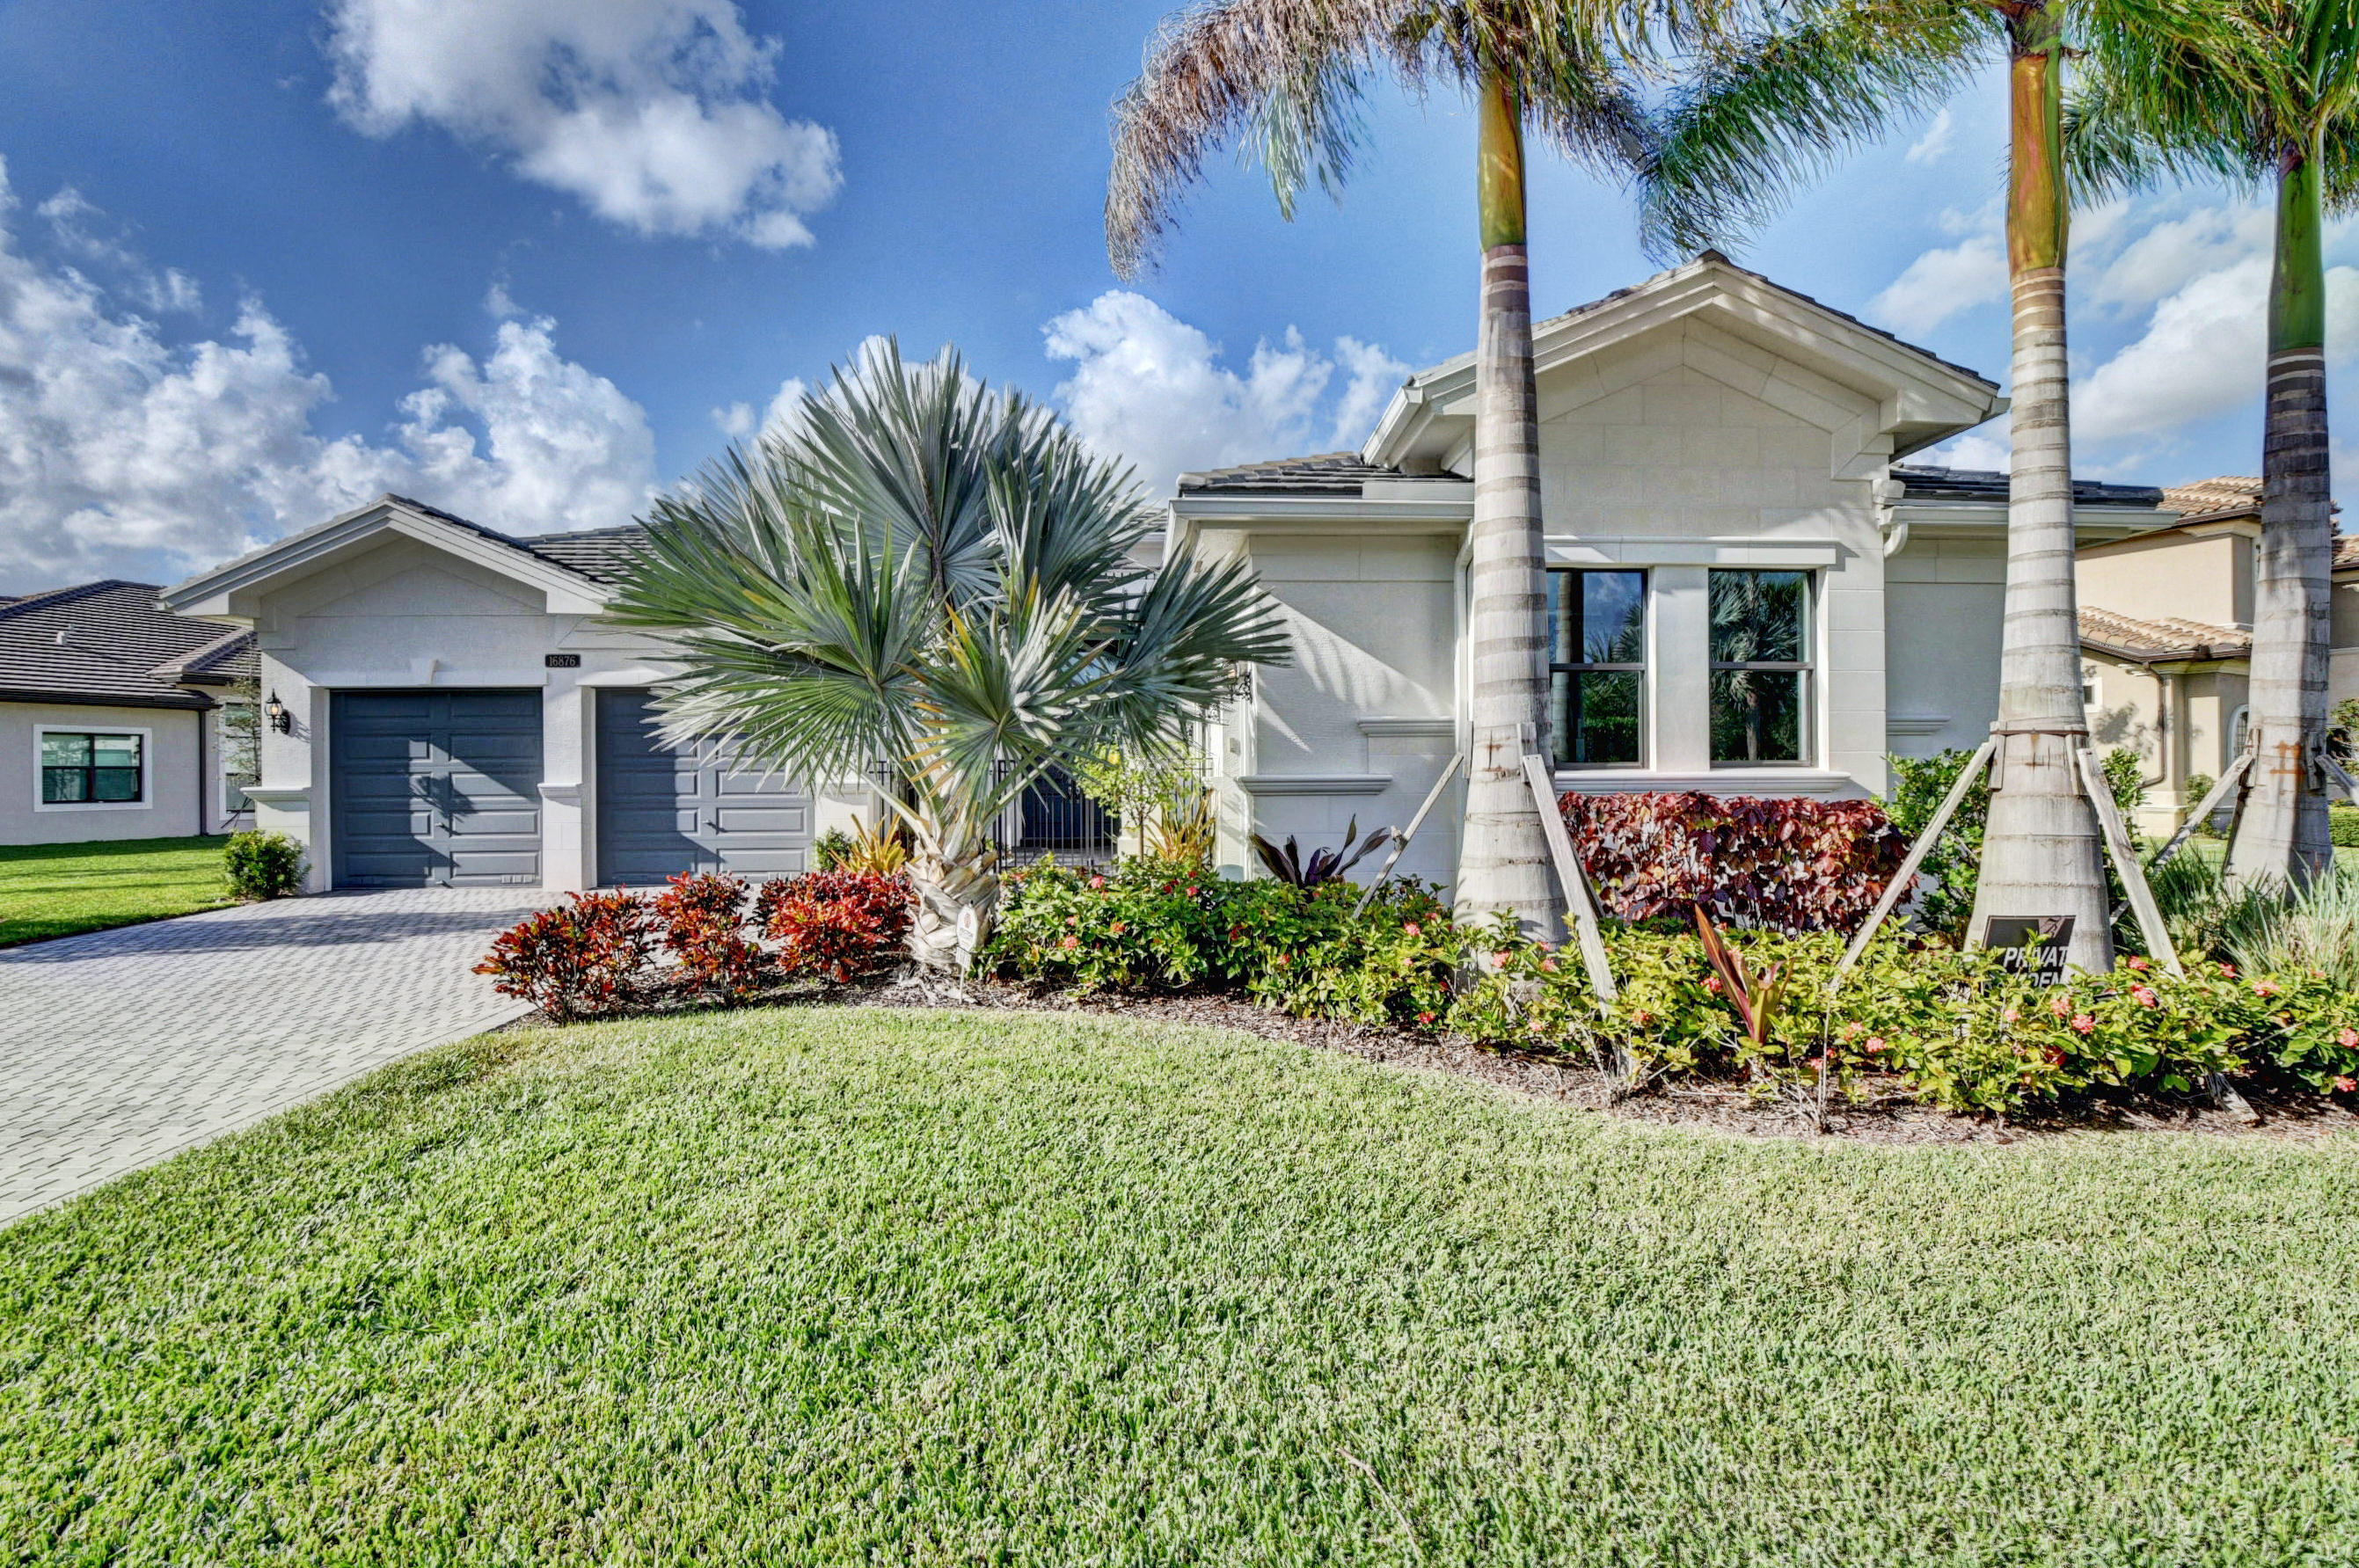 Home for sale in Seven Brides Delray Beach Florida